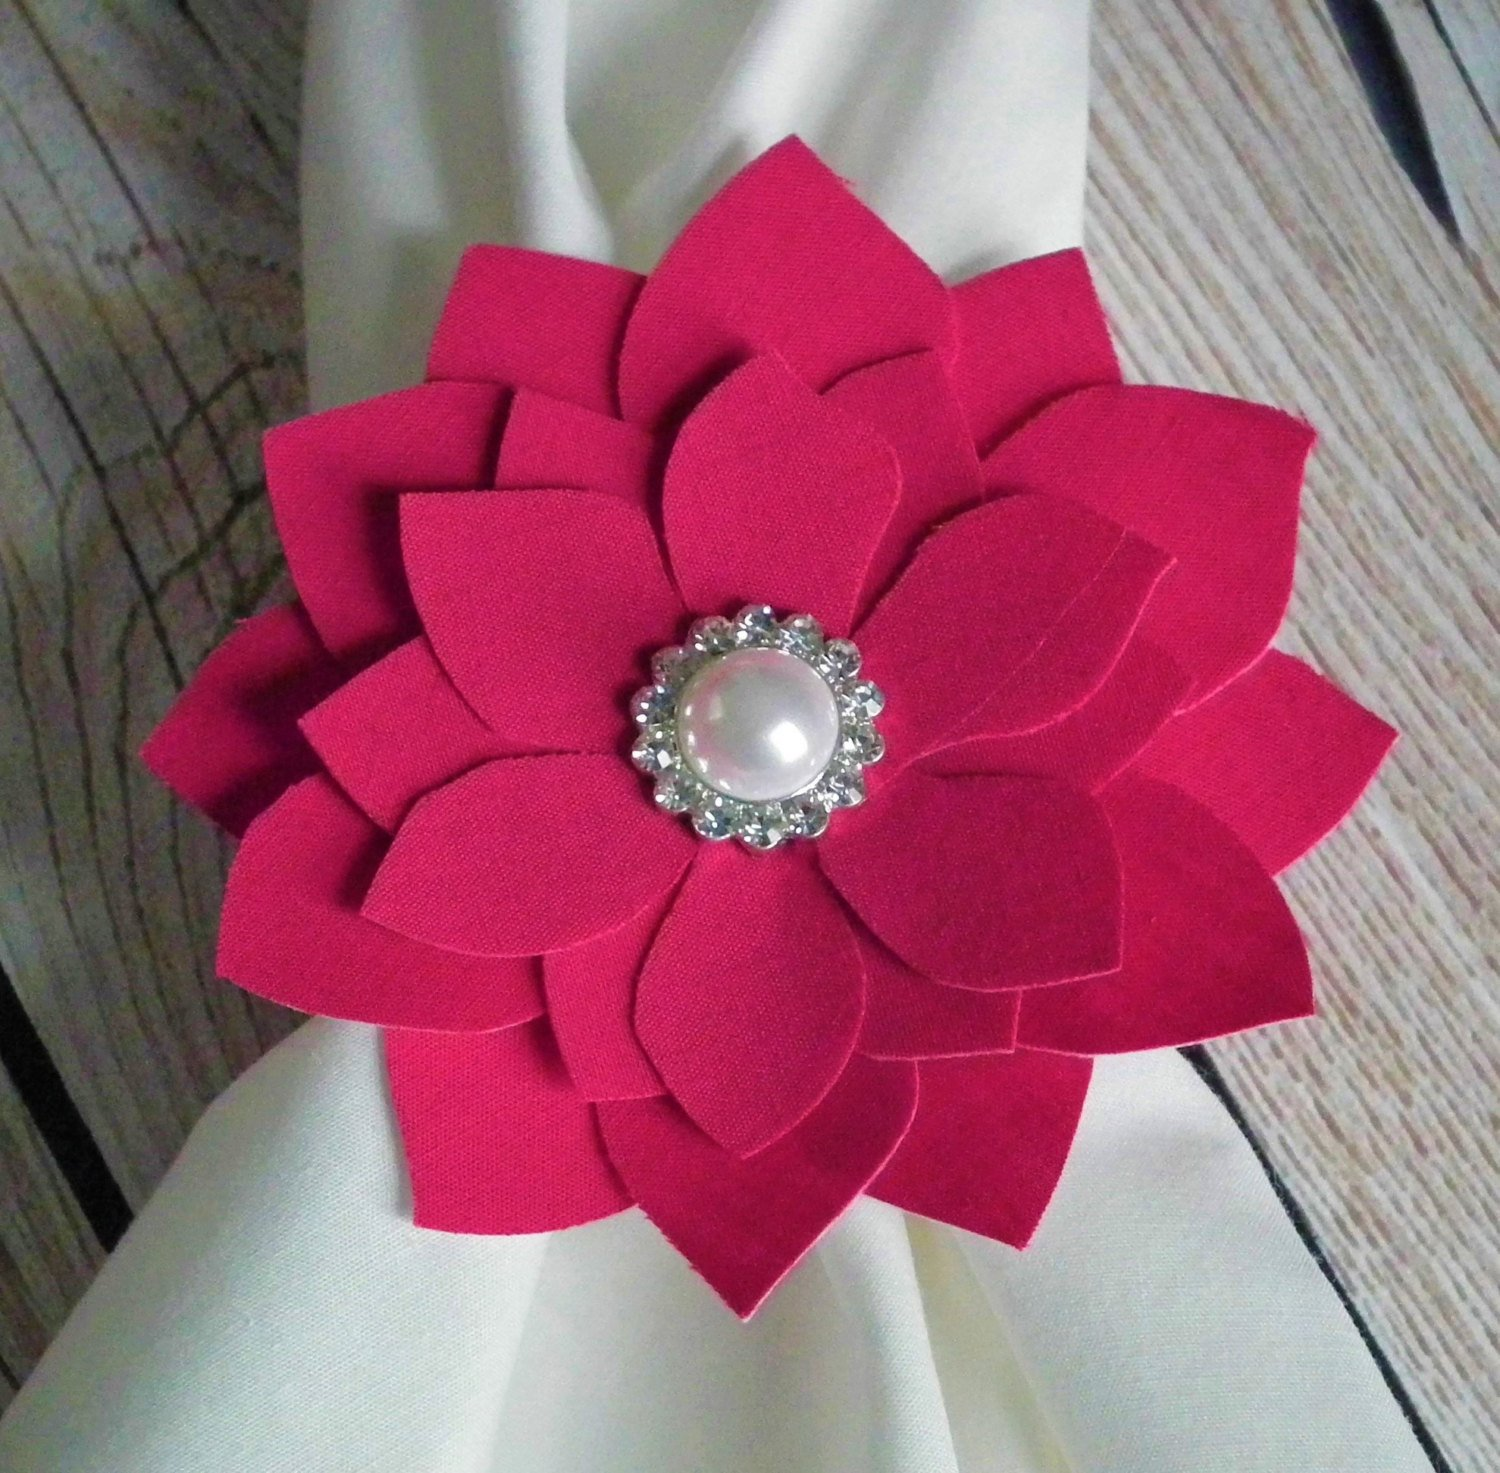 Set of 2 fabric flower napkin rings, hot pink with white faux pearl center